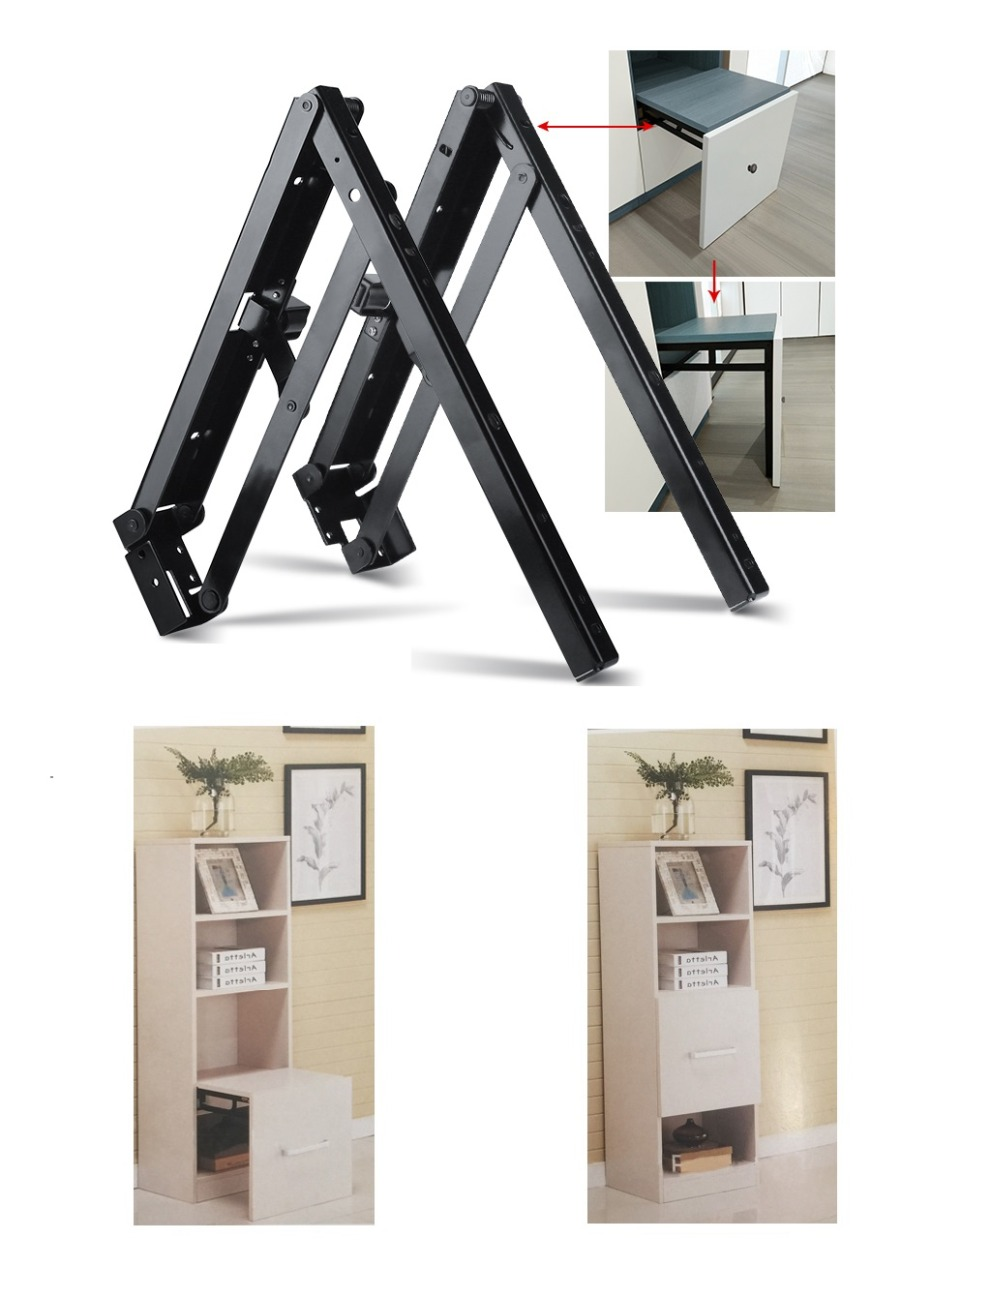 Gentle 2pcs Wall Mounted Folding Table Shelf Support Bracket Spring Pair Thicken 304 Stainless Steel Table Bracket Atv,rv,boat & Other Vehicle Automobiles & Motorcycles